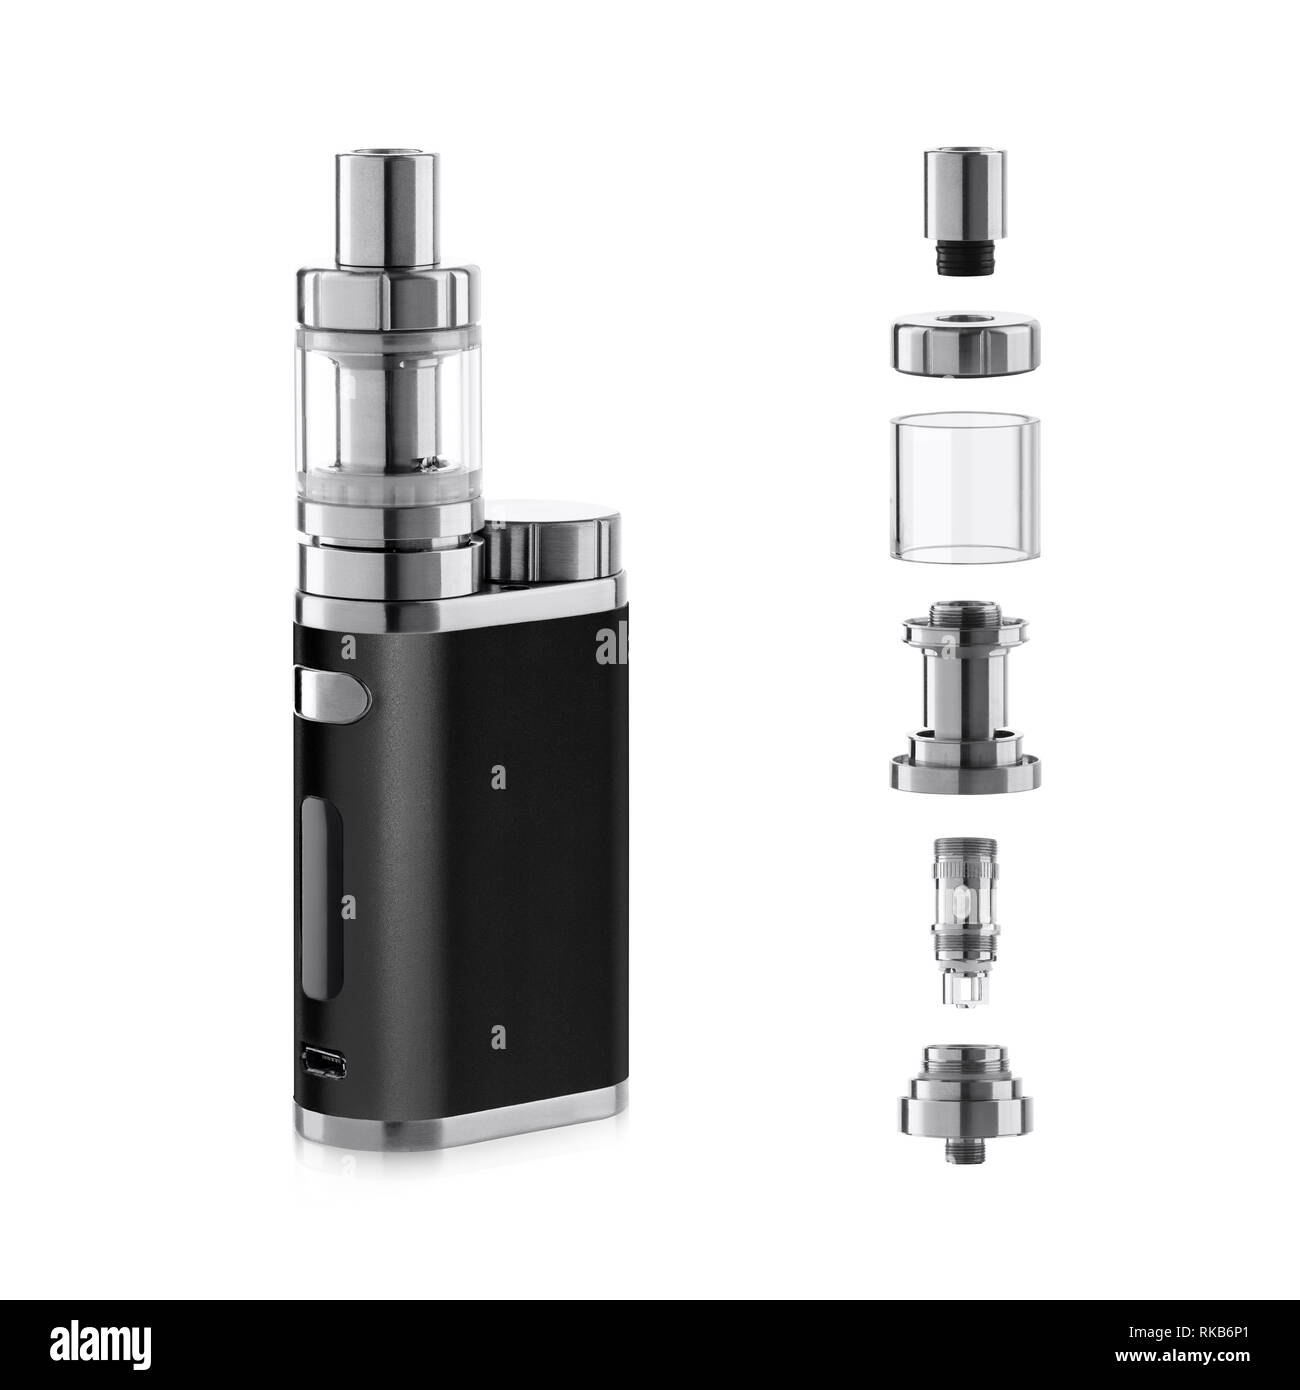 Vape electronic cigarette with atomizer components - Stock Image